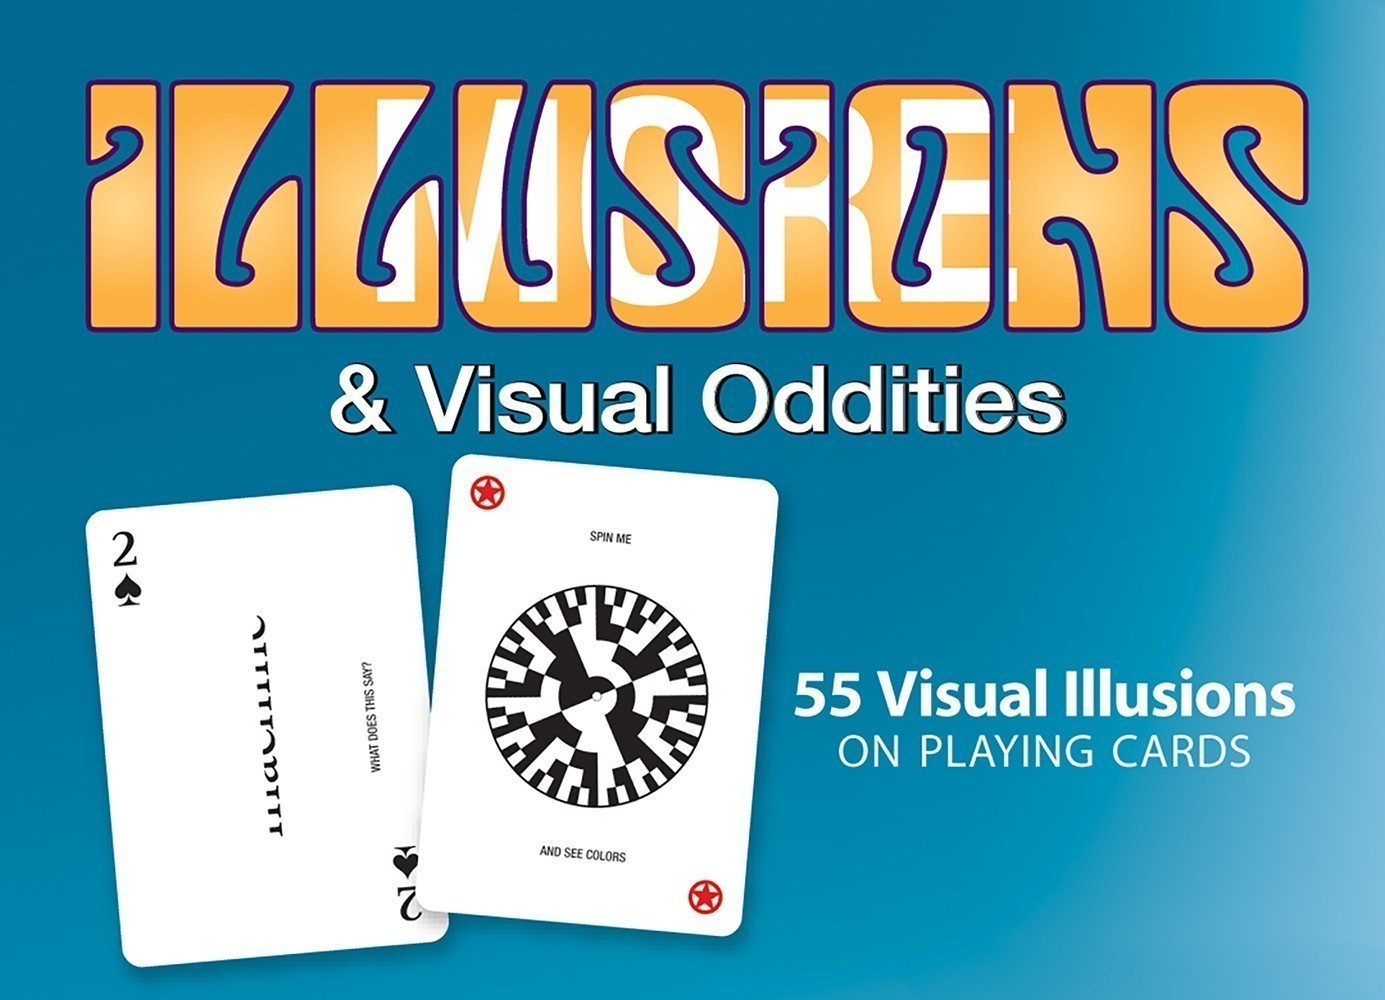 More Illusions & Visual Oddities